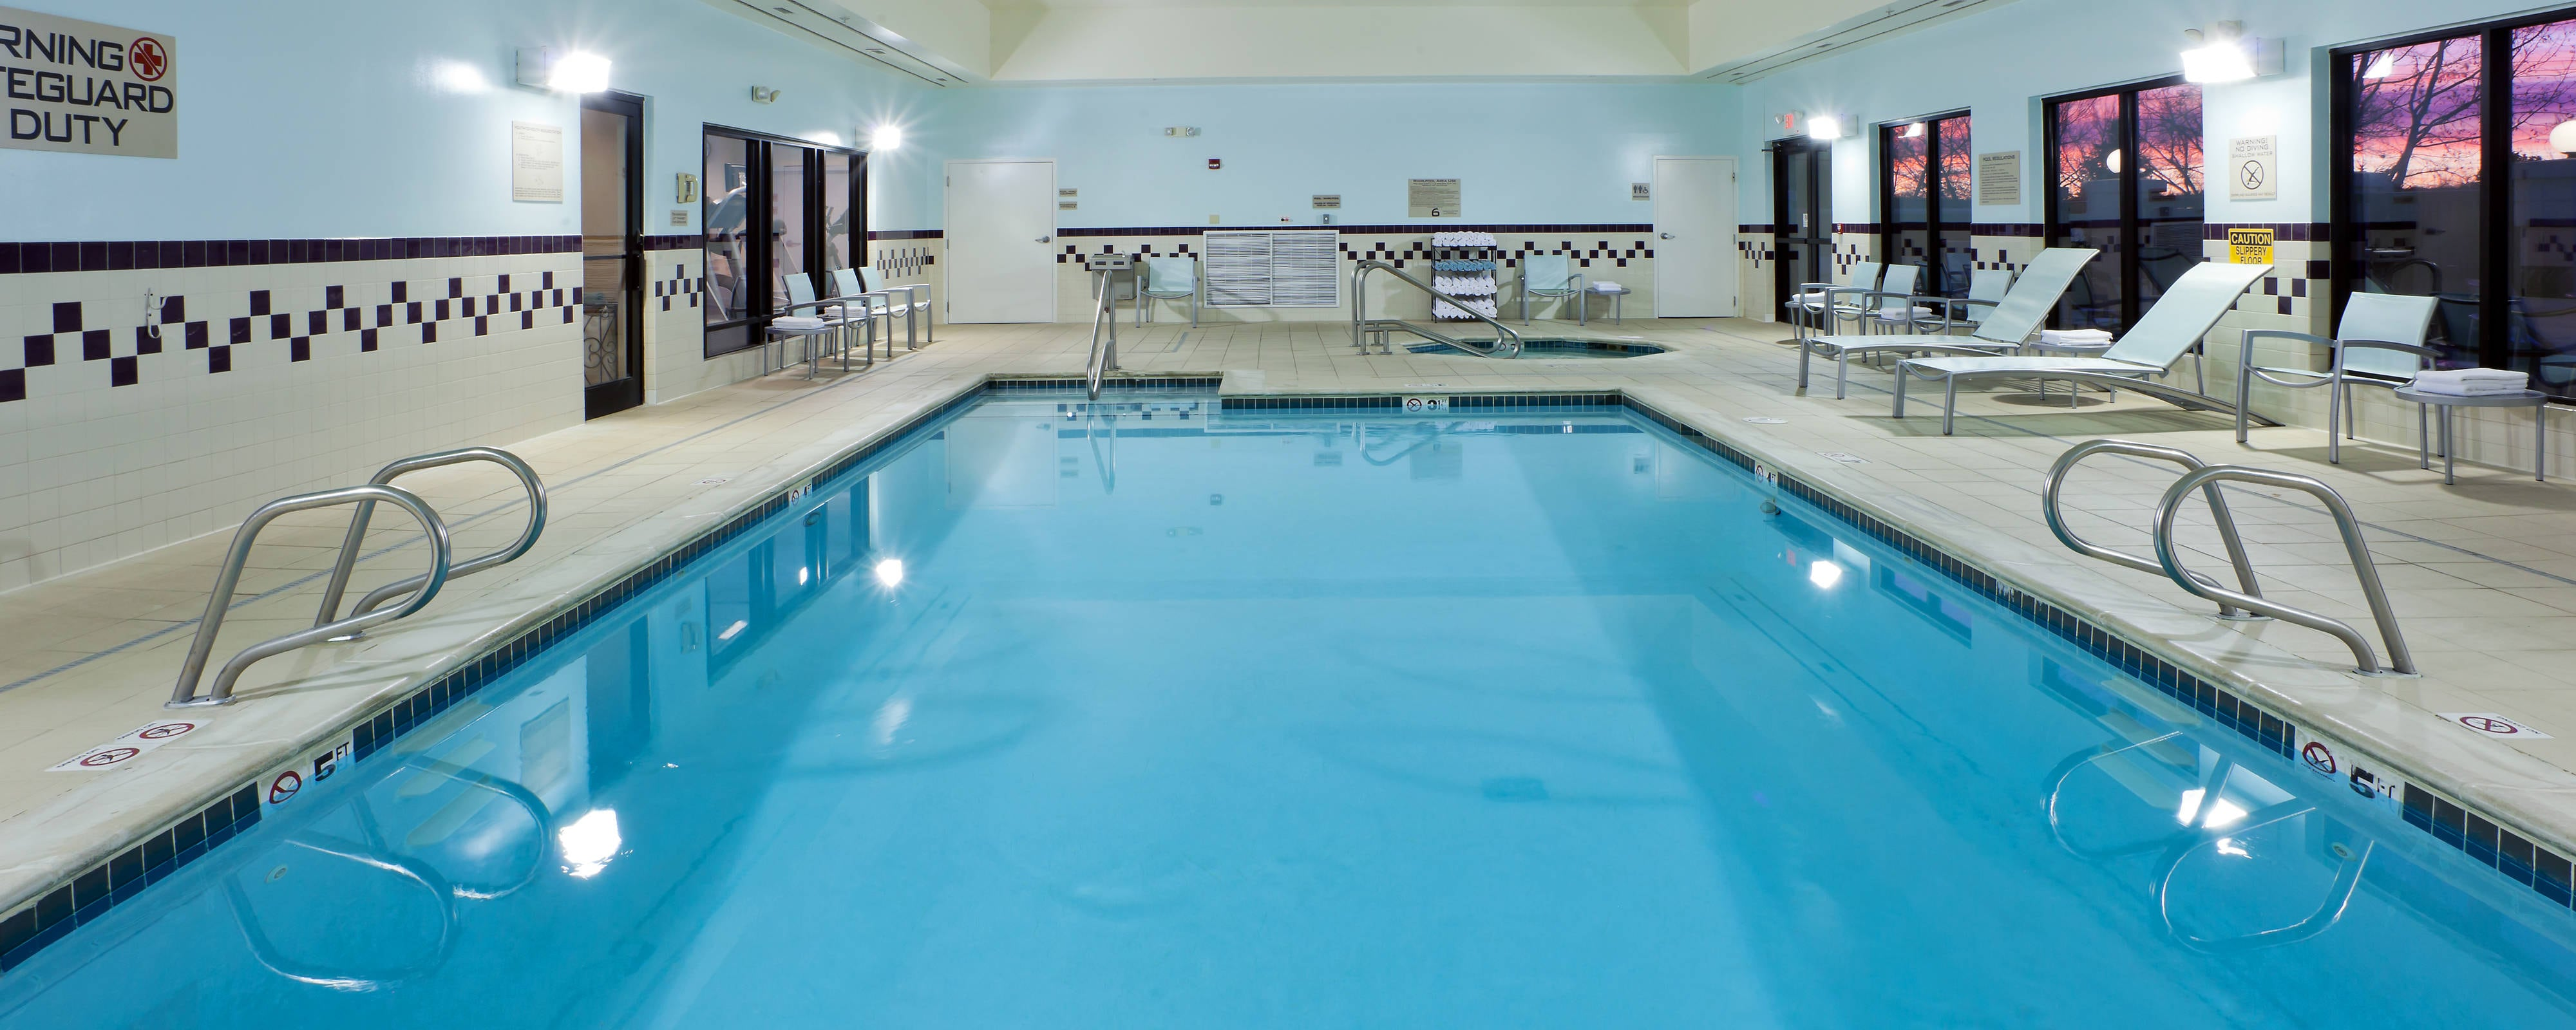 Springhill Suites Westminster Indoor Pool